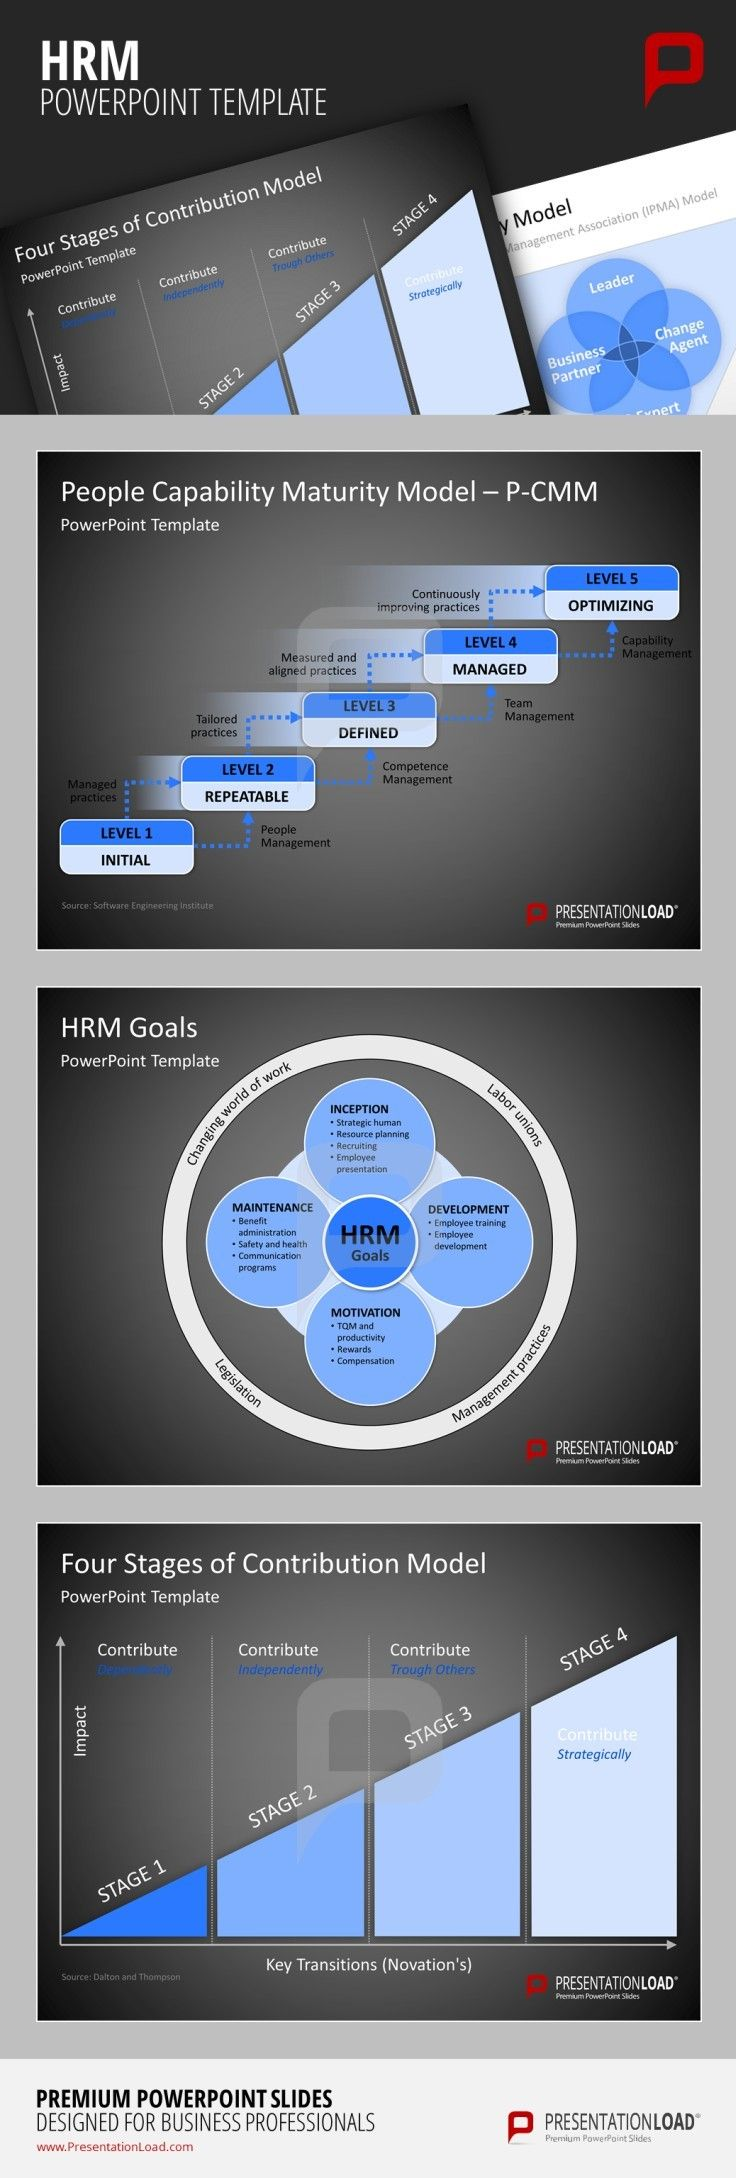 Human Resource Management PowerPoint Template HR Competency Model ...